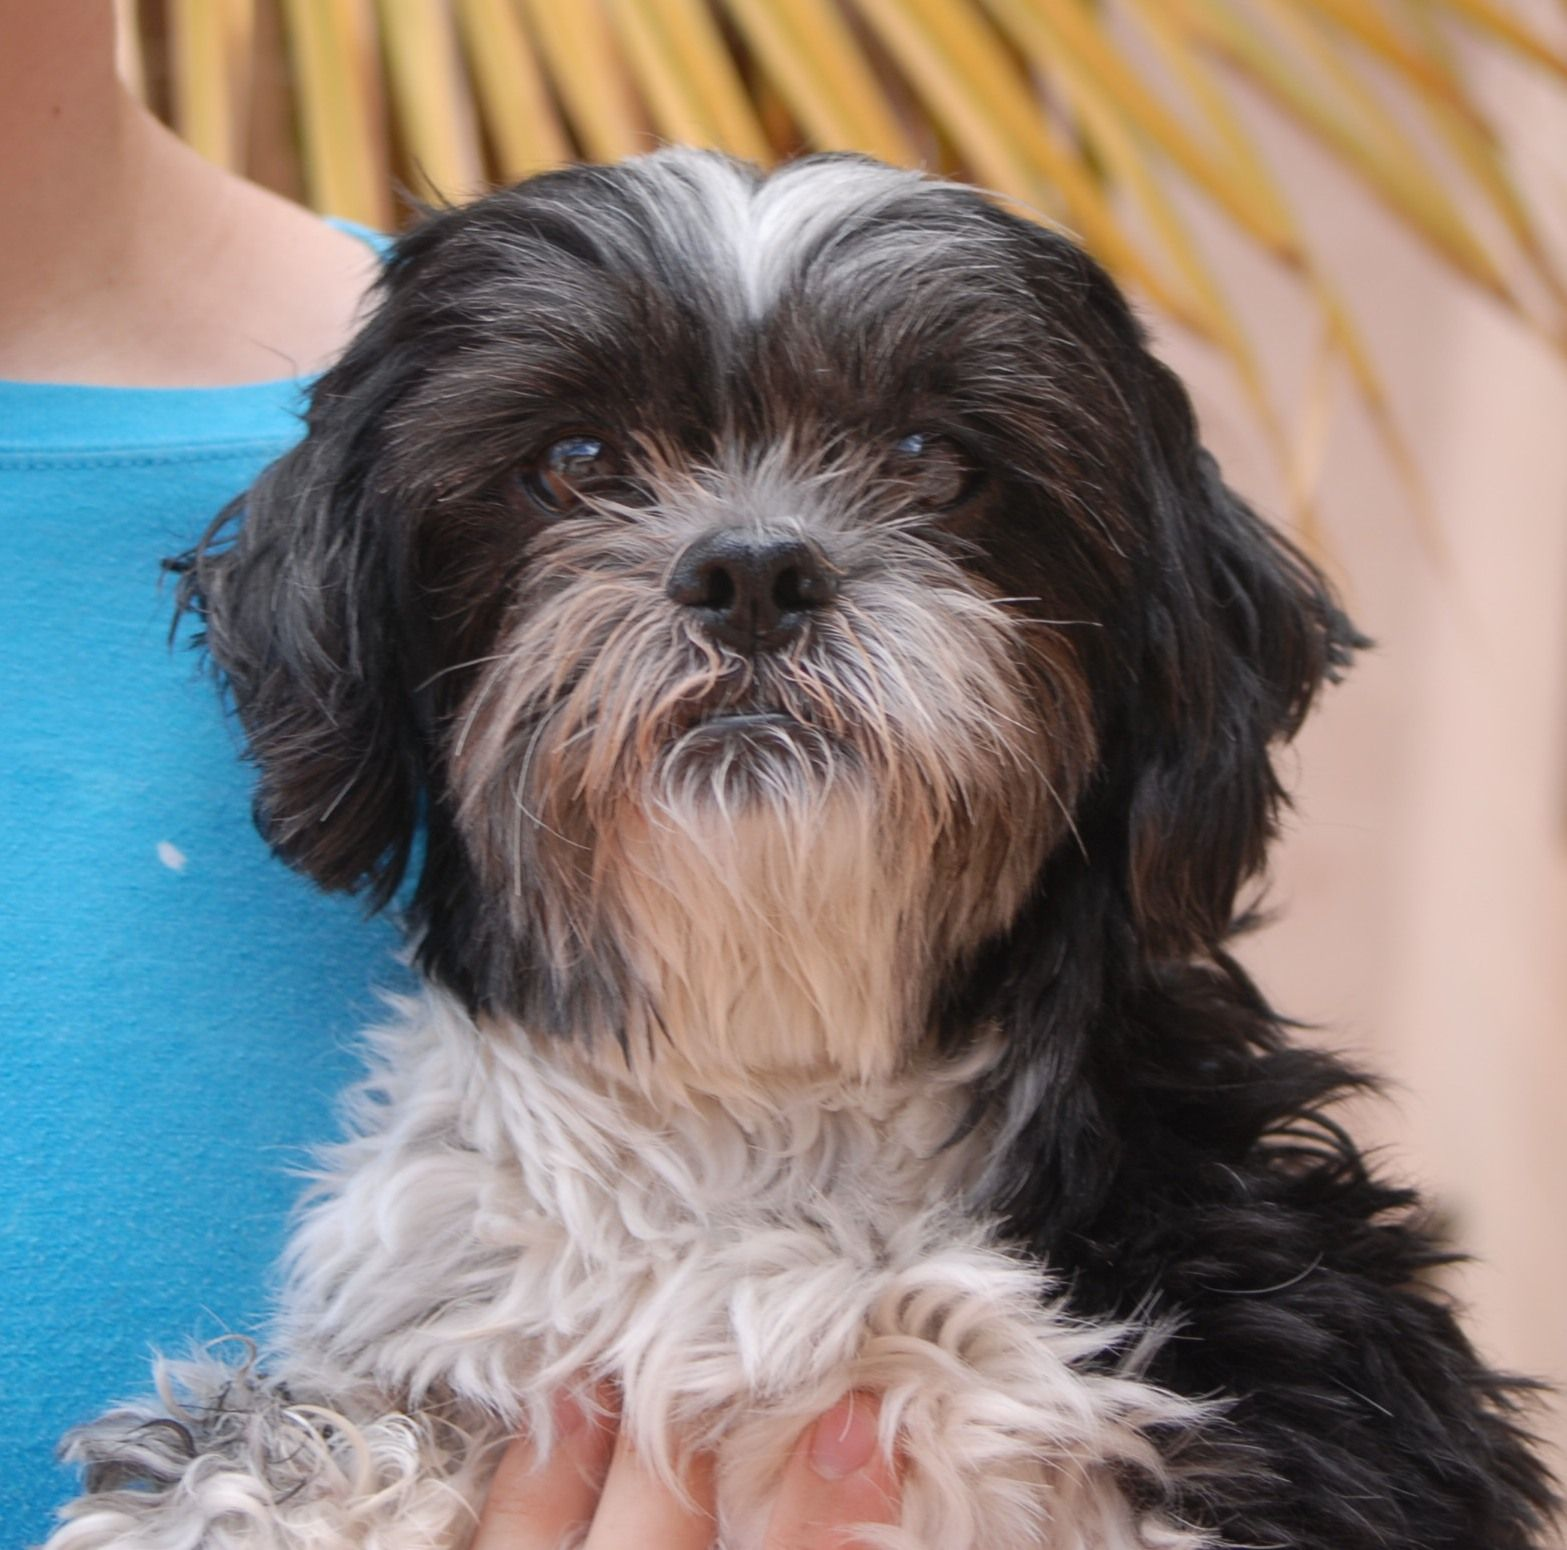 Frederick is a kind sweetheart debuting for adoption today